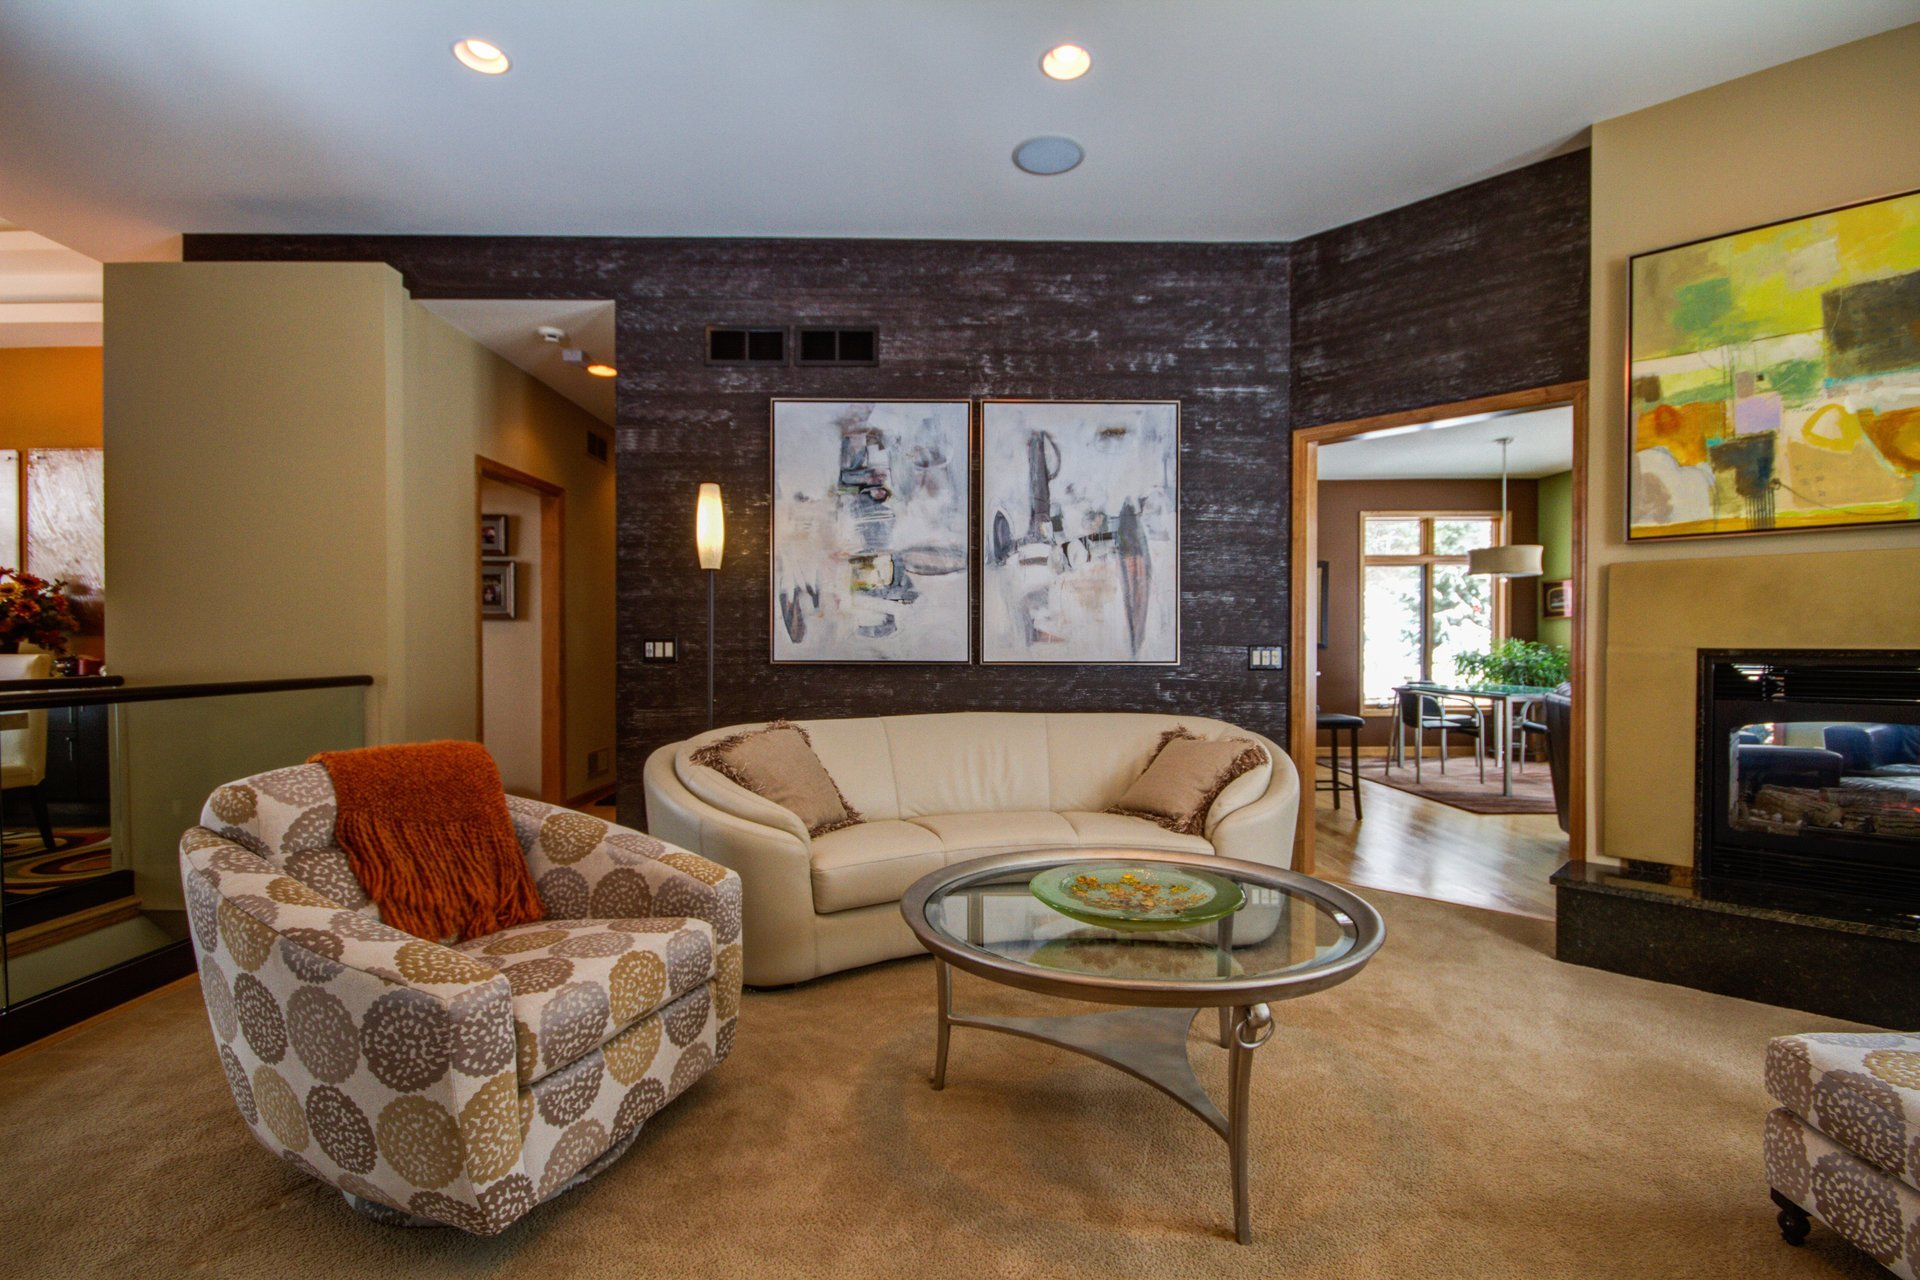 chocolate brown accent living room wall, abstract artwork above the sofa, curved leather sofa, round glass chaddock coffee table